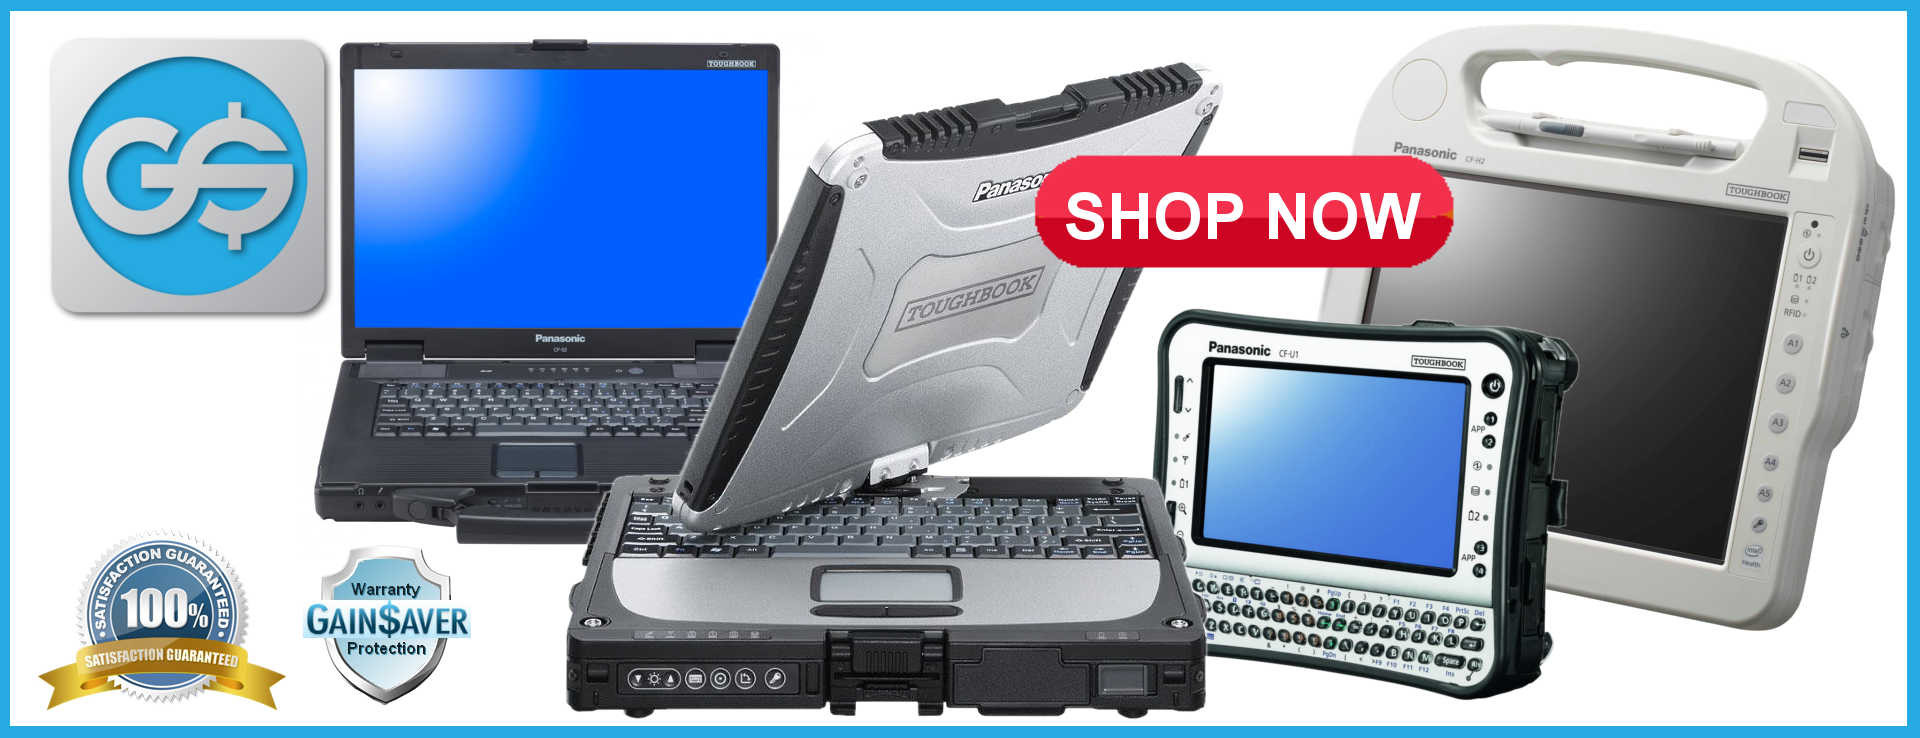 How to Save on Refurbished Panasonic Toughbooks